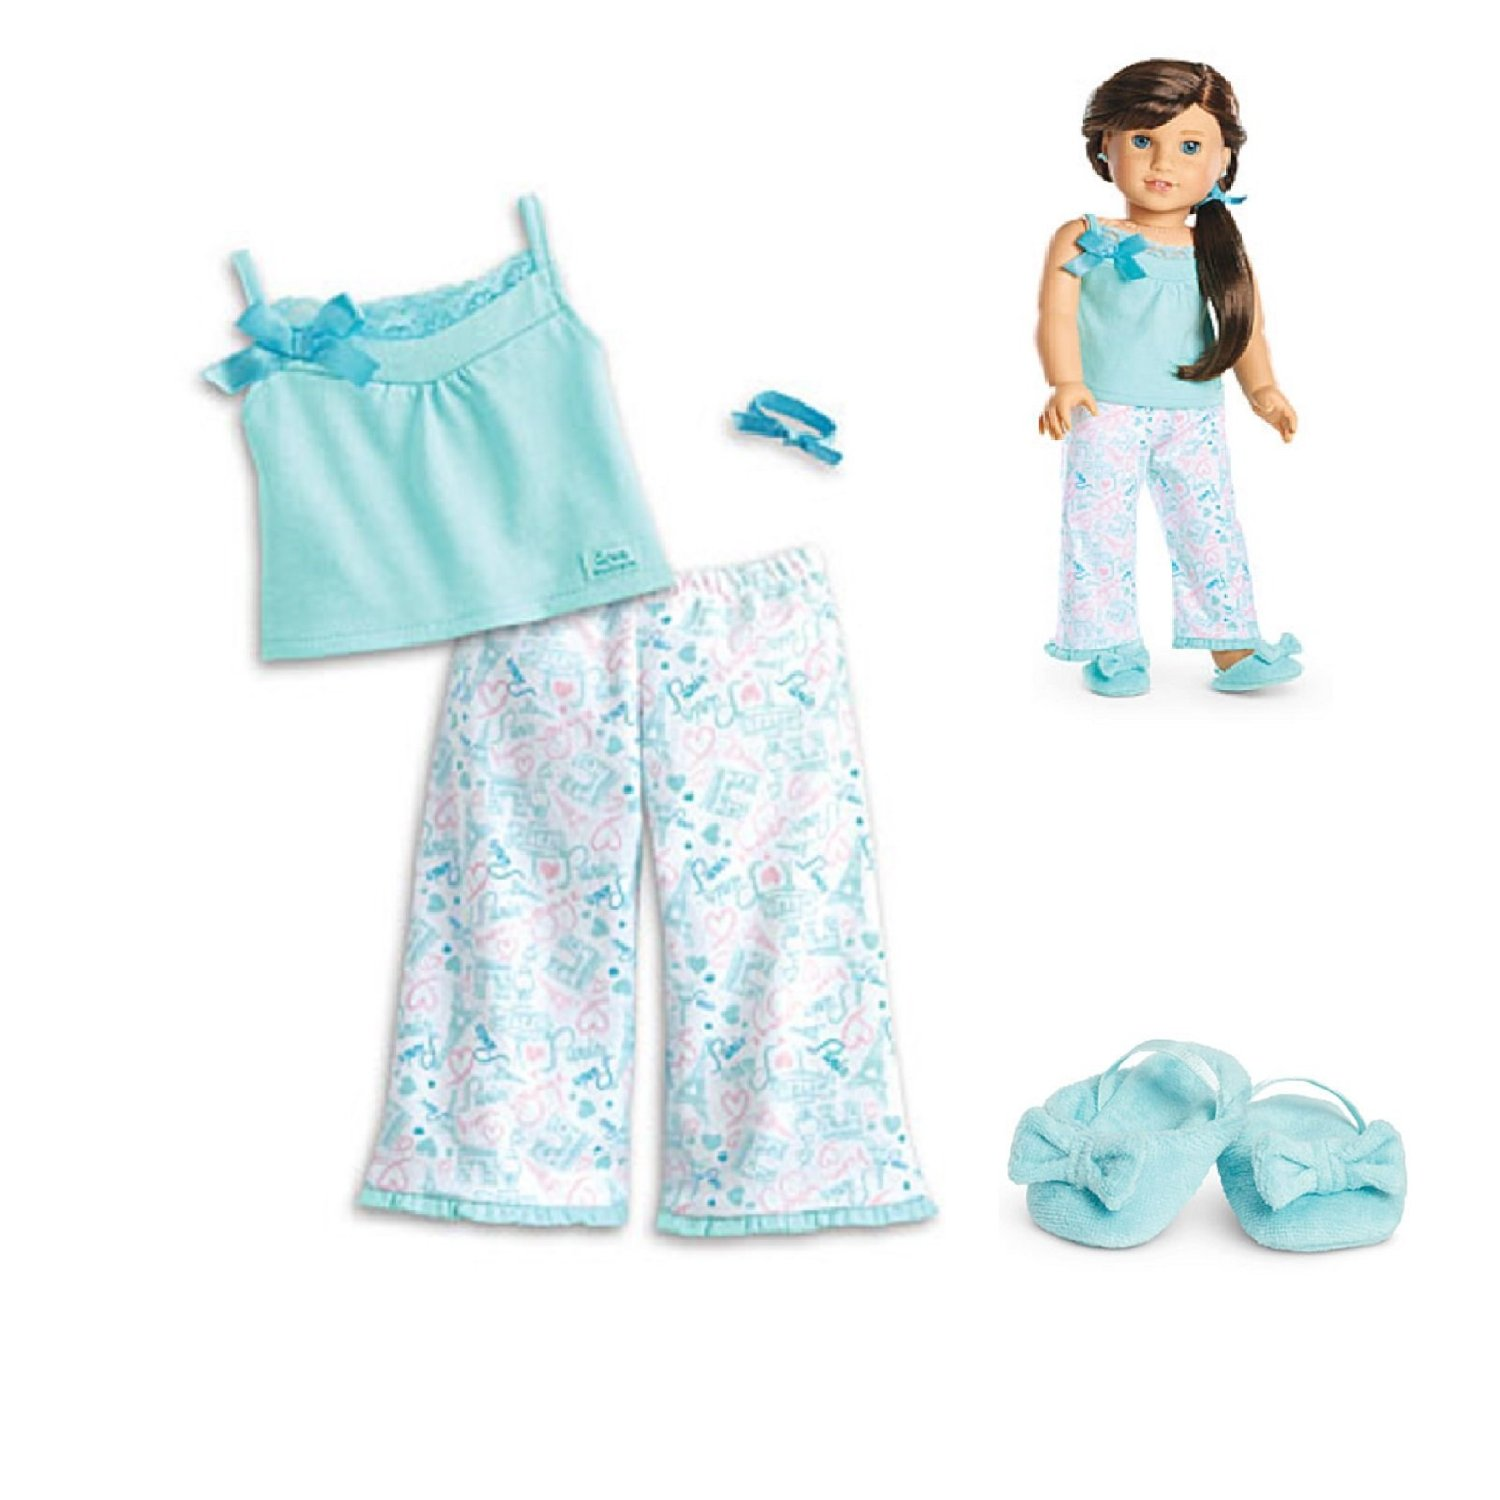 American Girl Grace - Grace's Pajamas for Dolls - American Girl of 2015